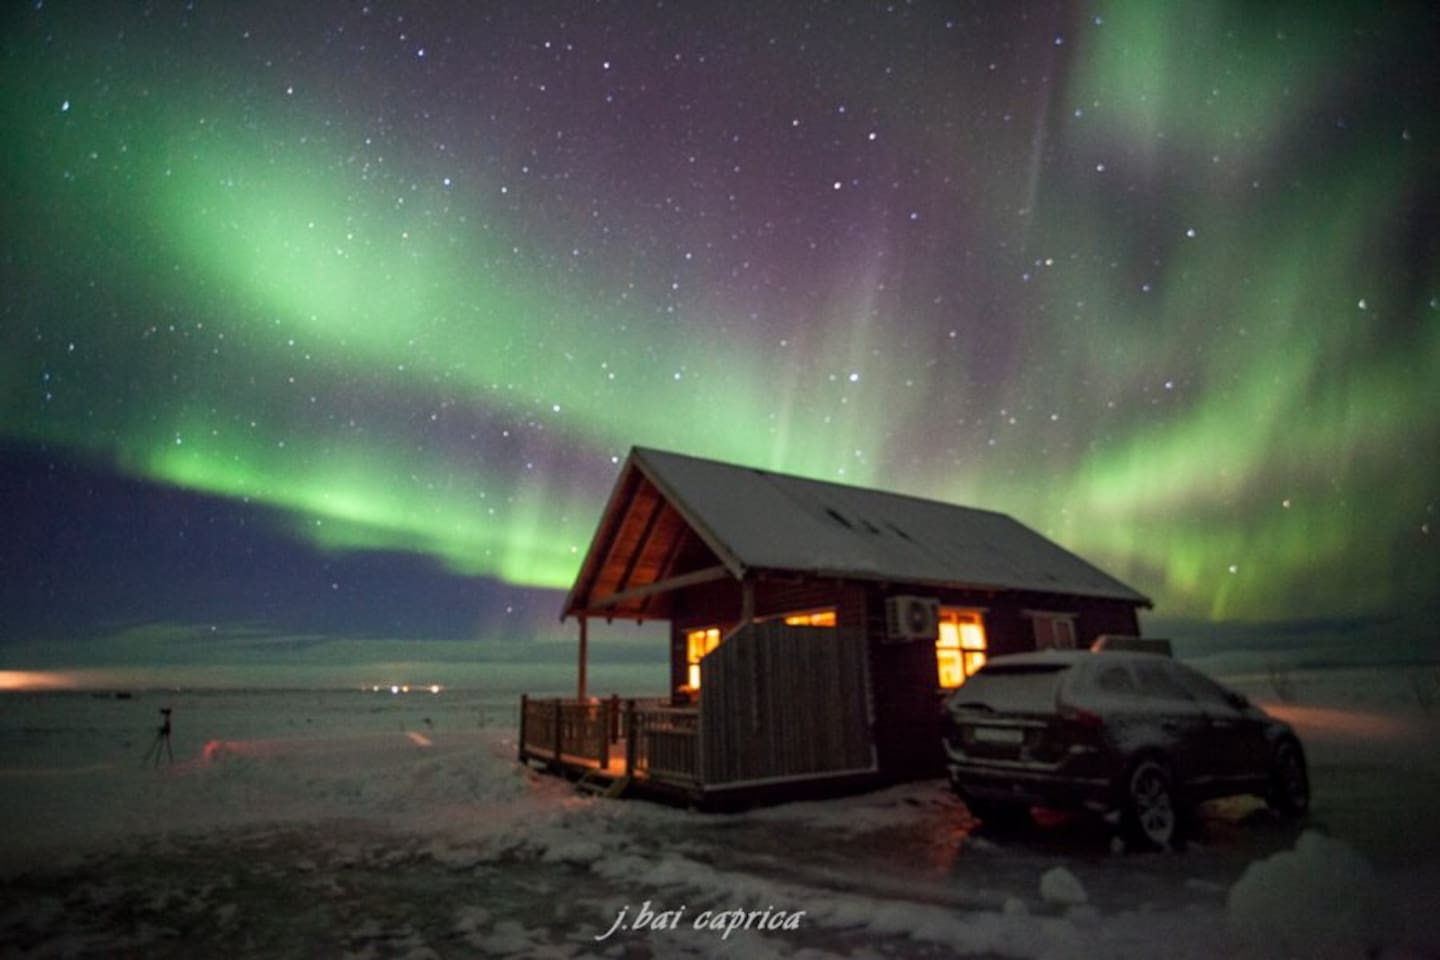 Perfect place to spot northern lights and stars.